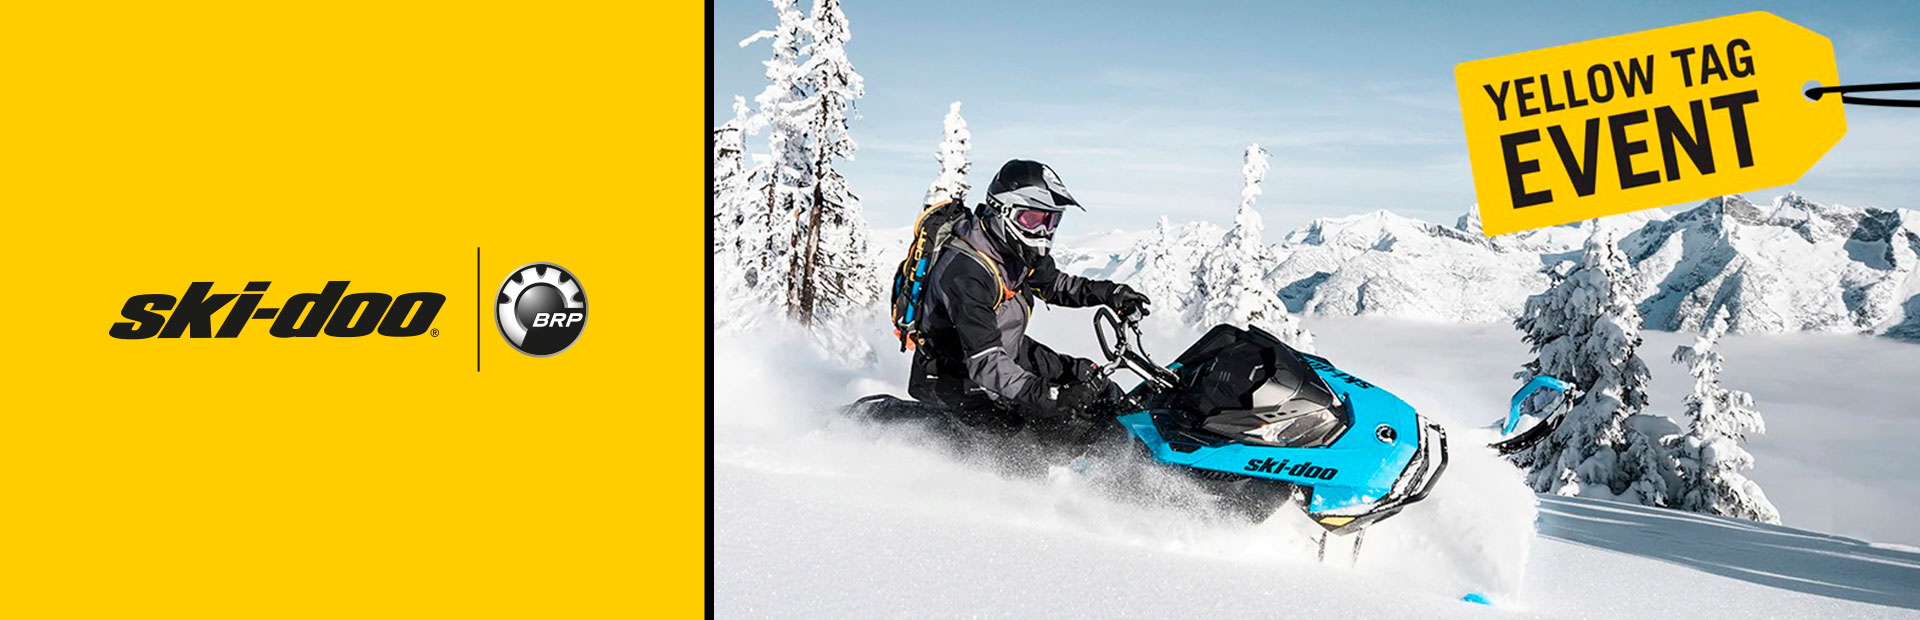 Ski-Doo: YELLOW TAG EVENT